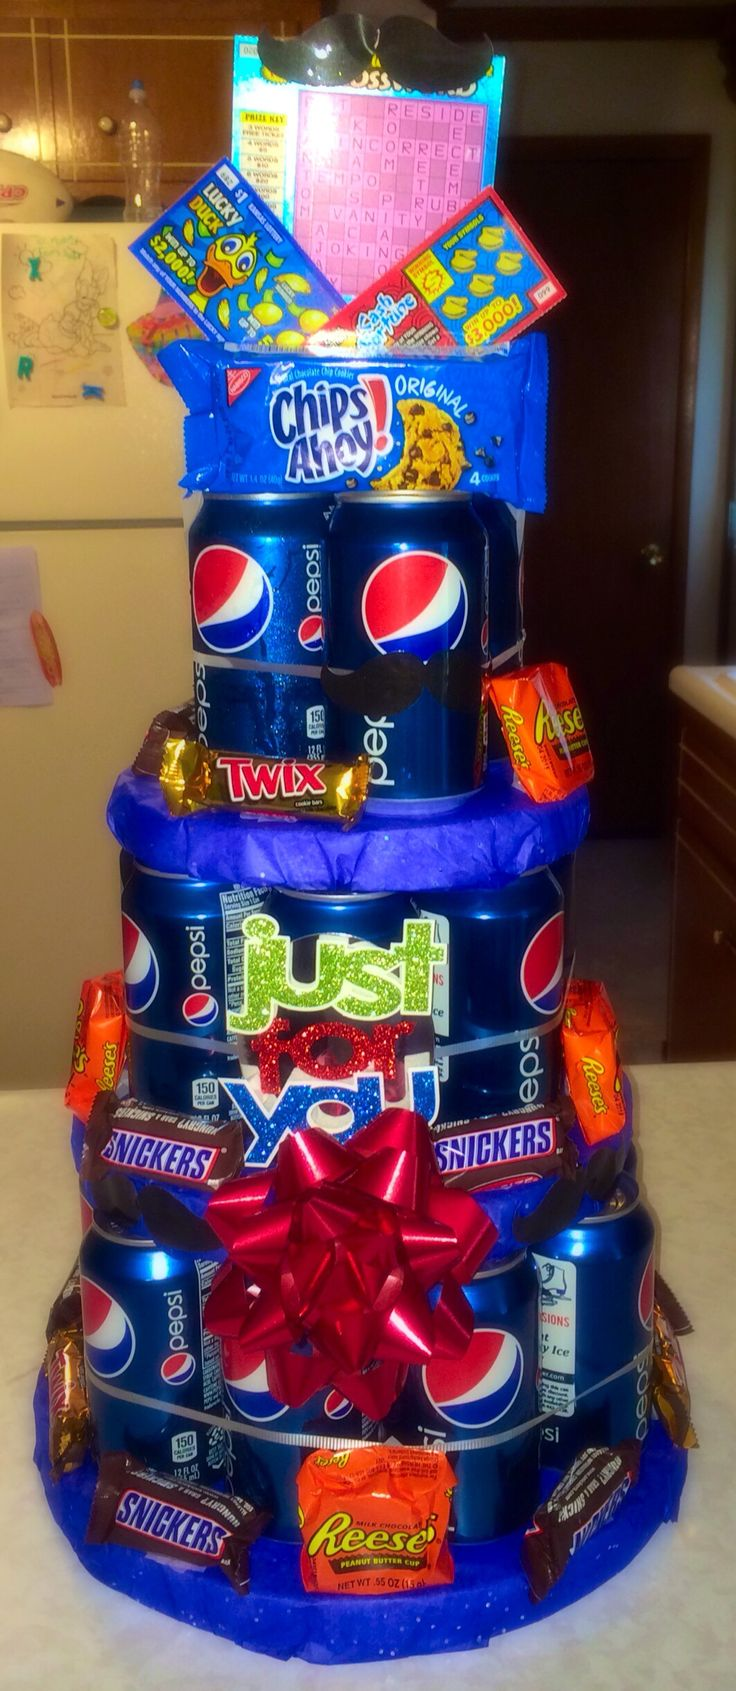 Pepsi Cake, because not everyone drinks beer.  Made for Father's Day but makes a great gift for any occasion - birthday, graduation, etc.